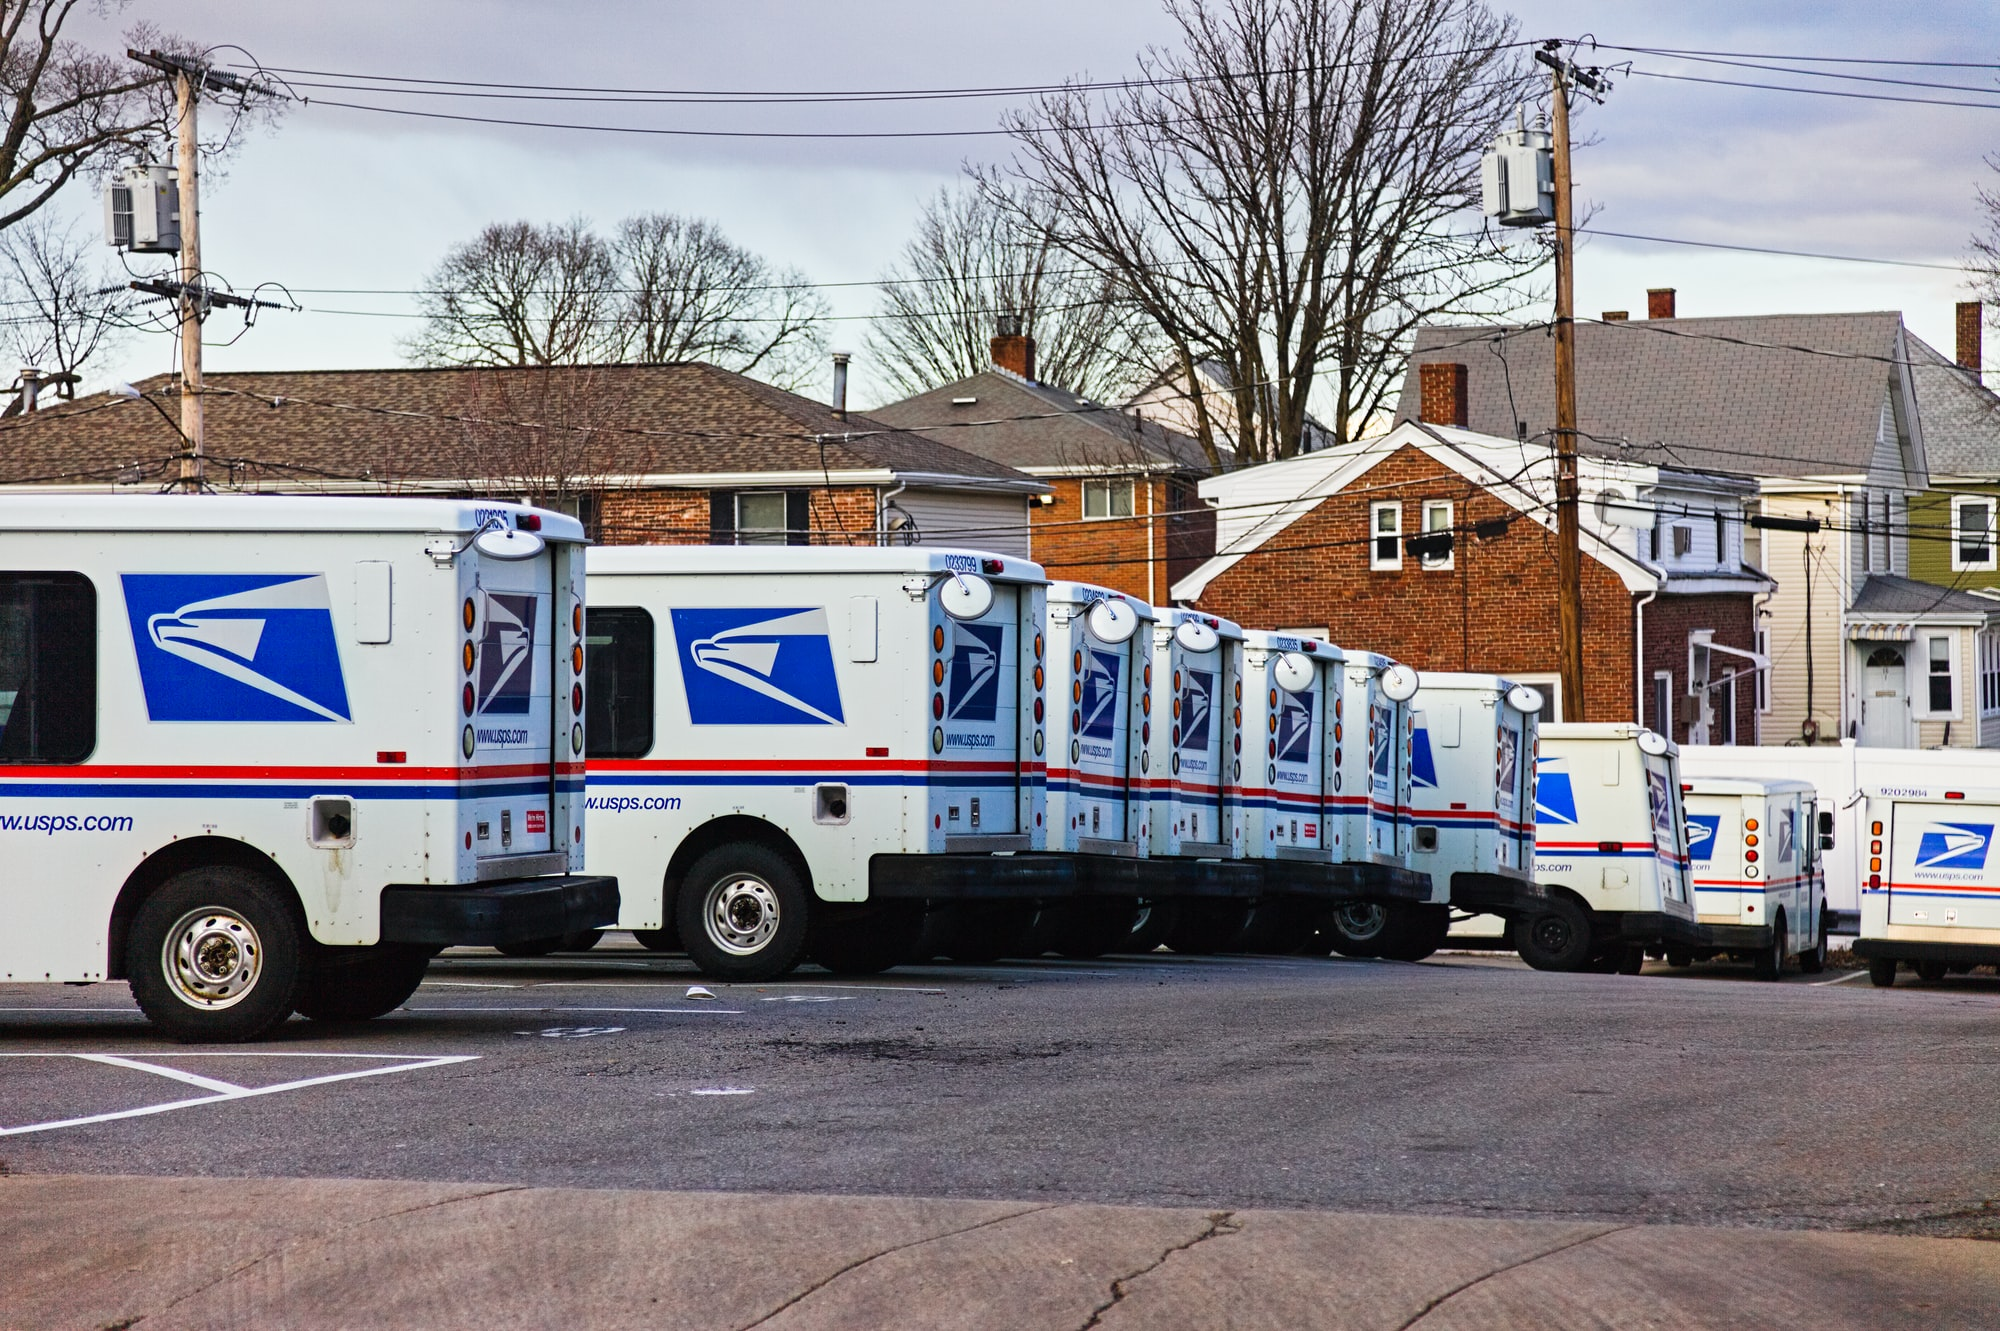 Postal Service Revs Up Electric Fleet Plans in Proposed Reconciliation Package